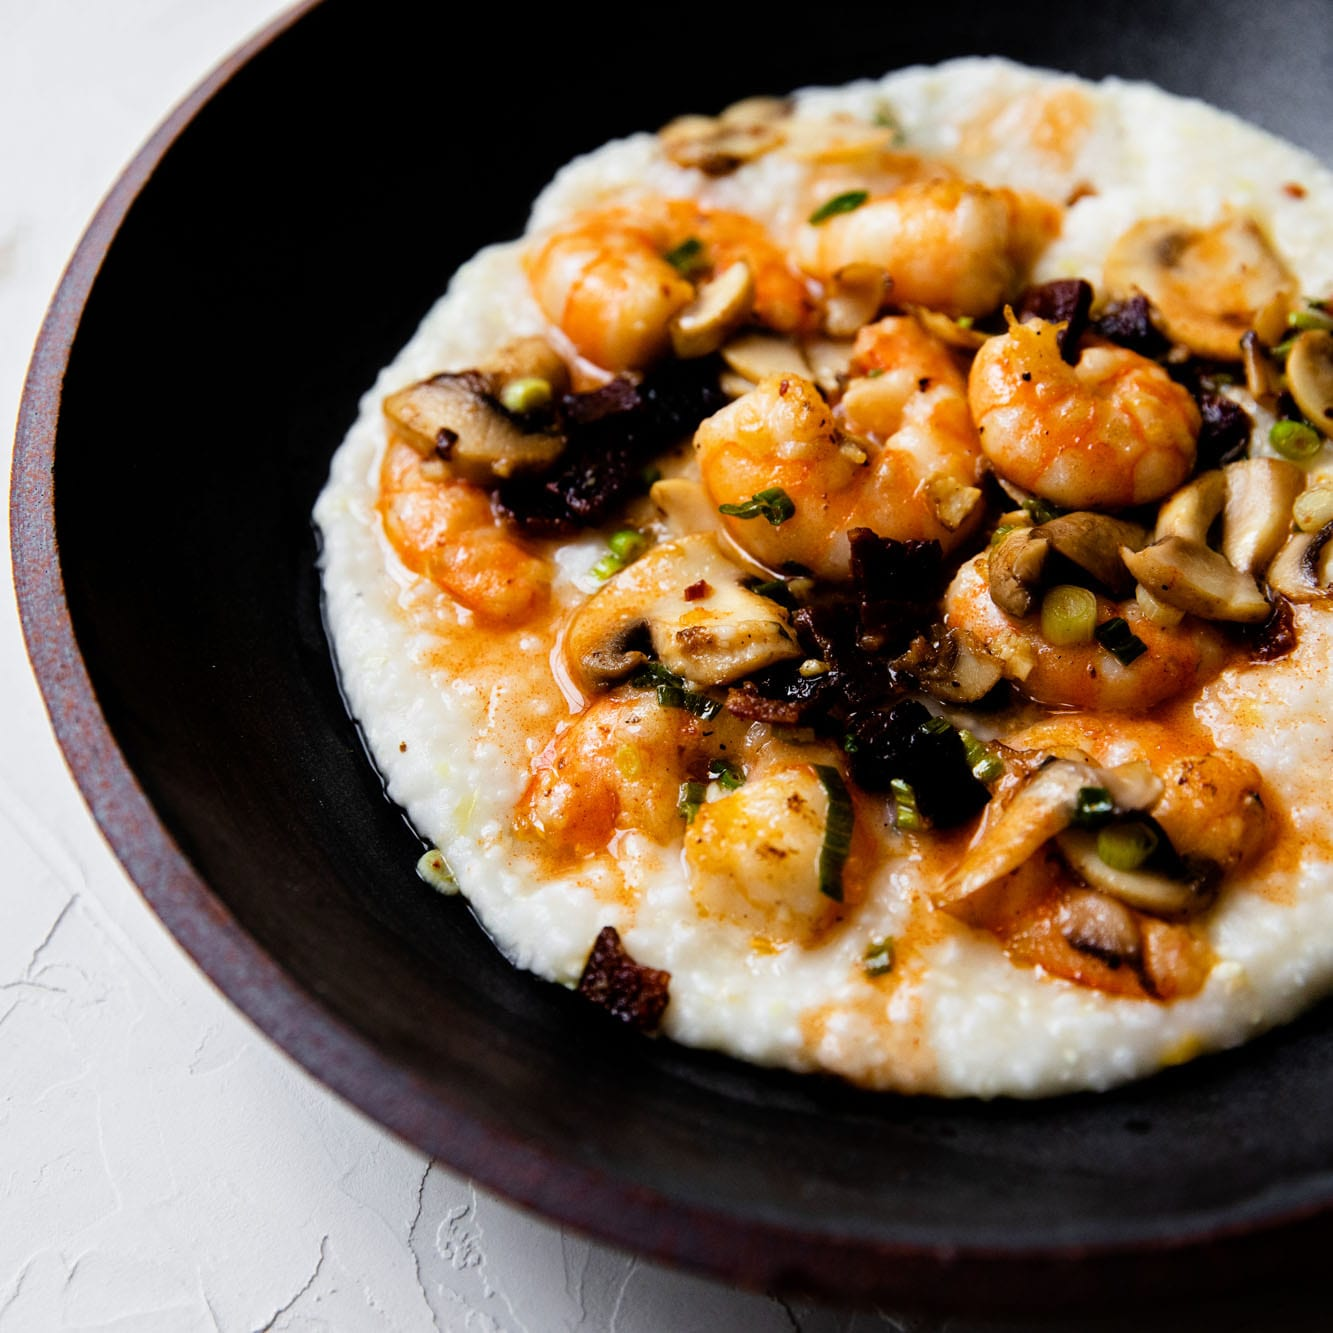 Robert Stehling's Shrimp and Grits